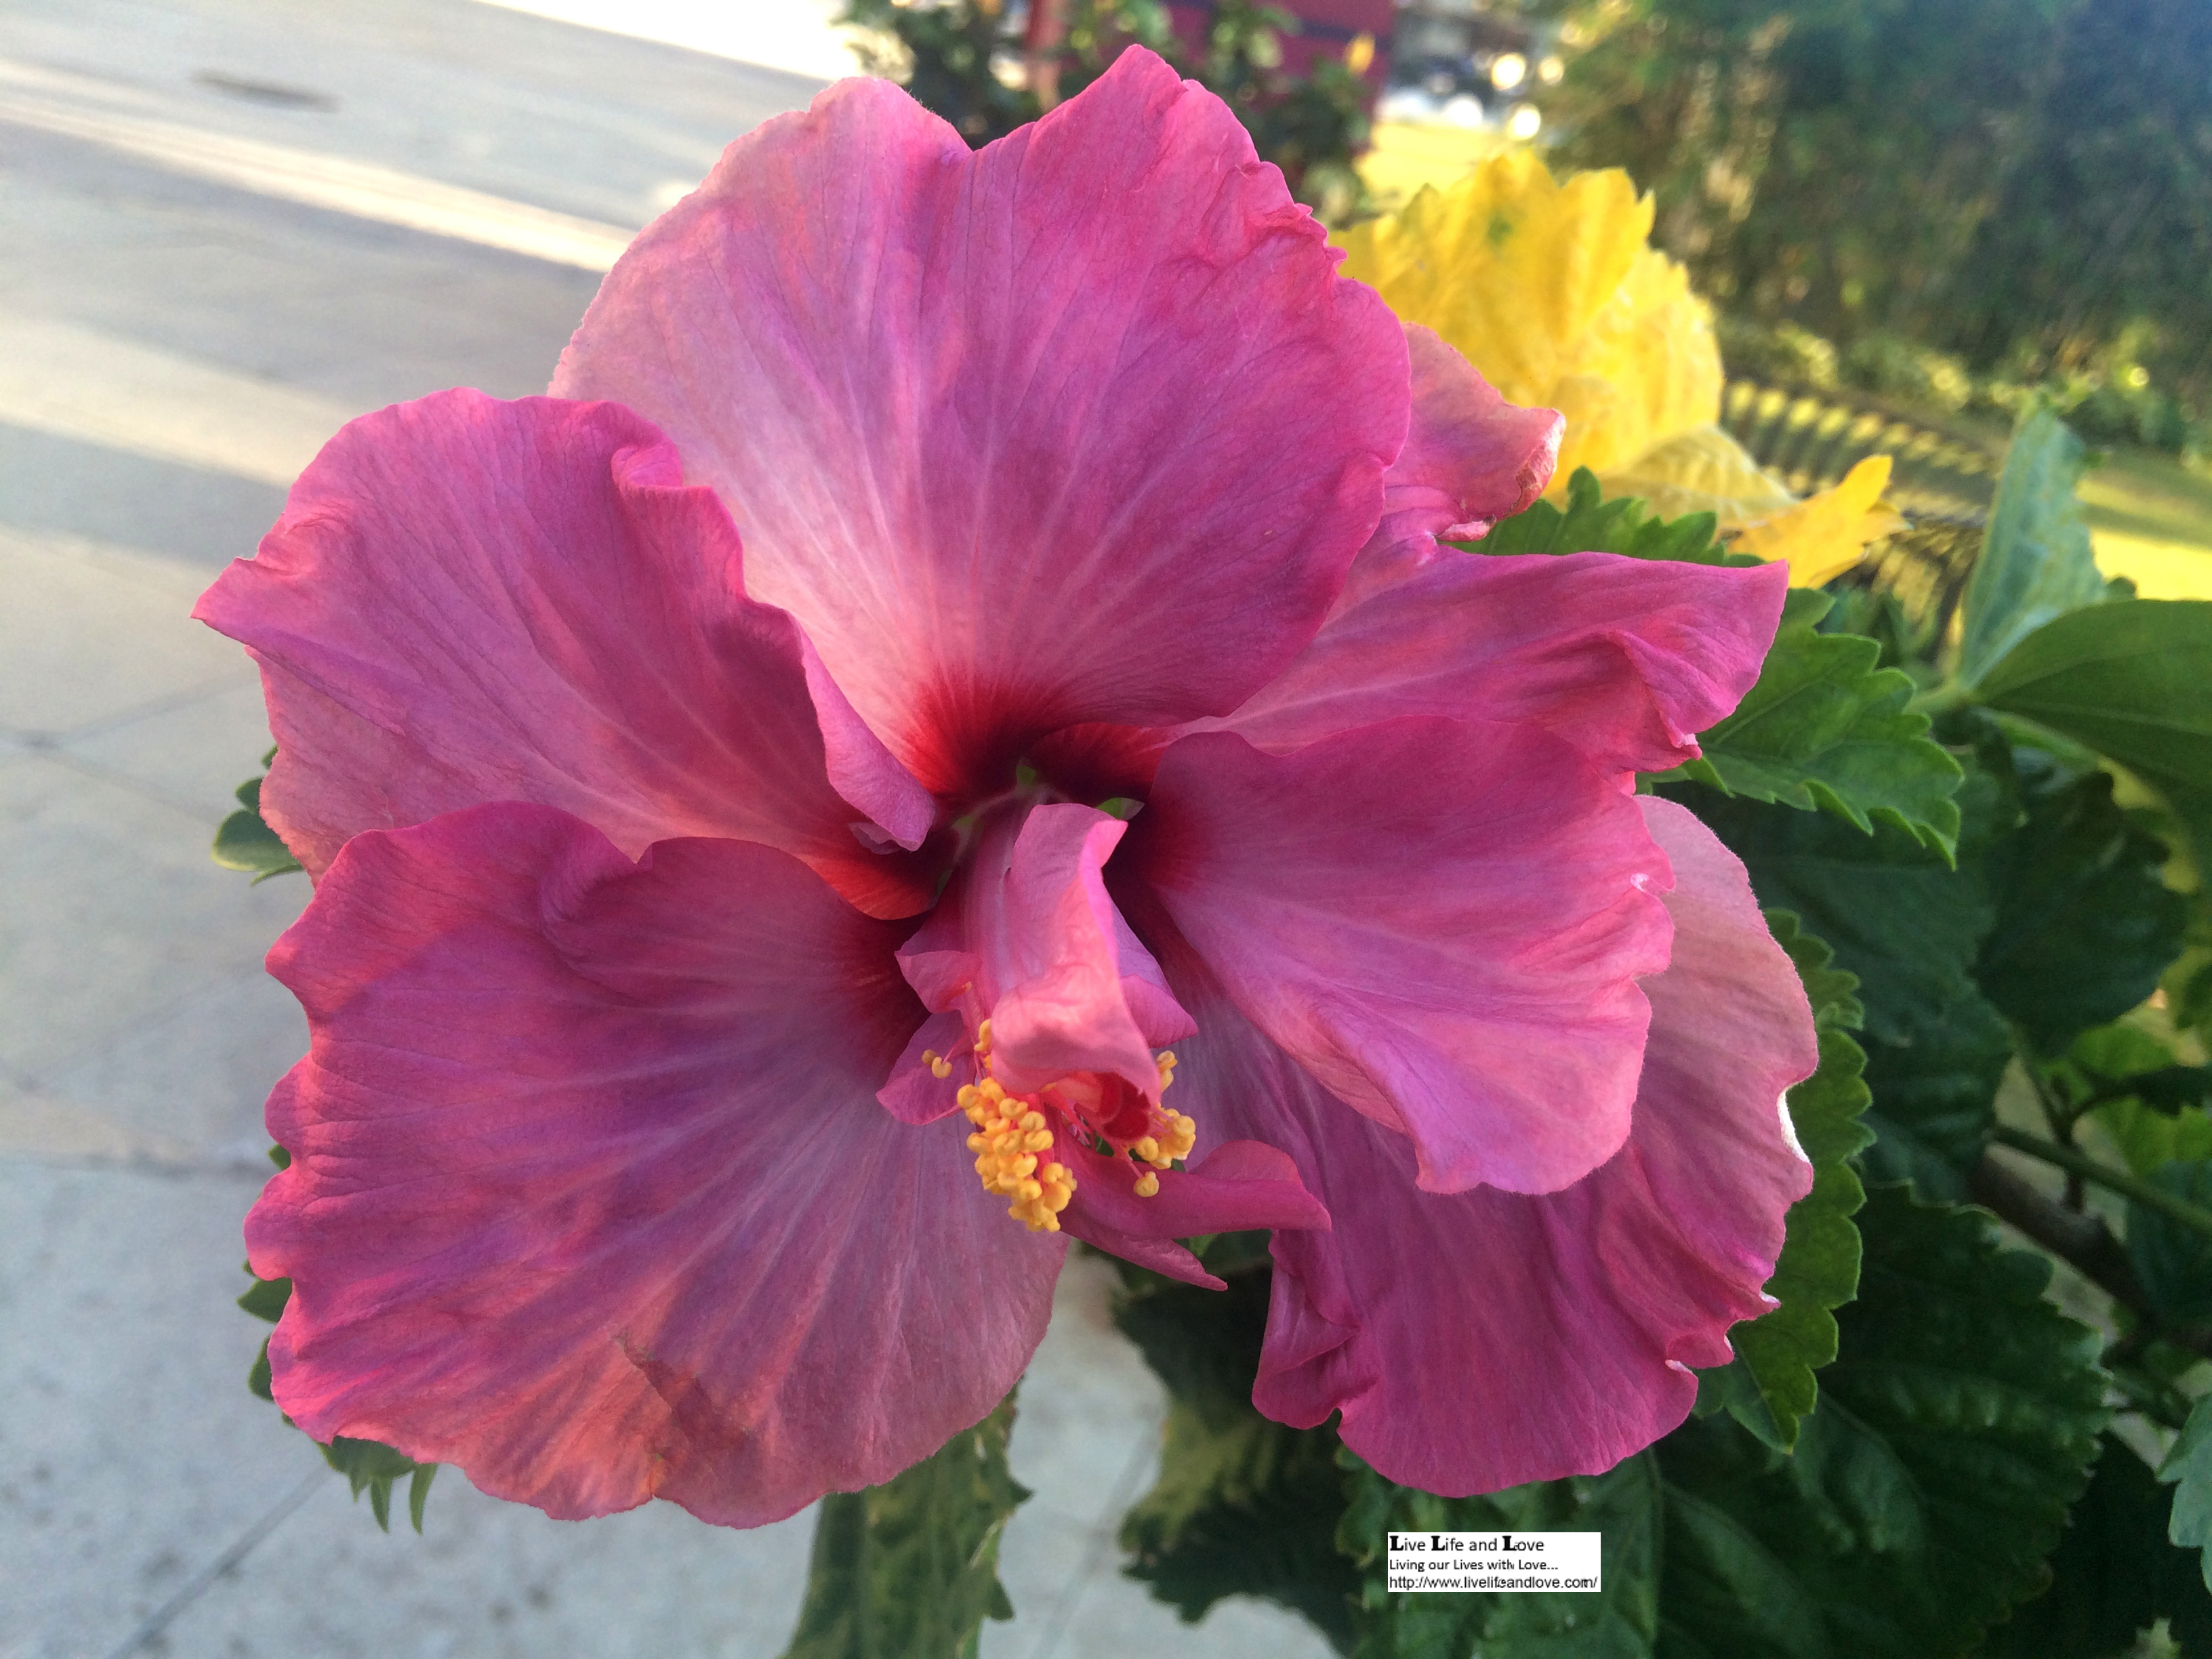 Hibiscus or rose mallow or chinese rose rosa sinensis live life light fuchsia hibiscus flower seems to be a lovely one izmirmasajfo